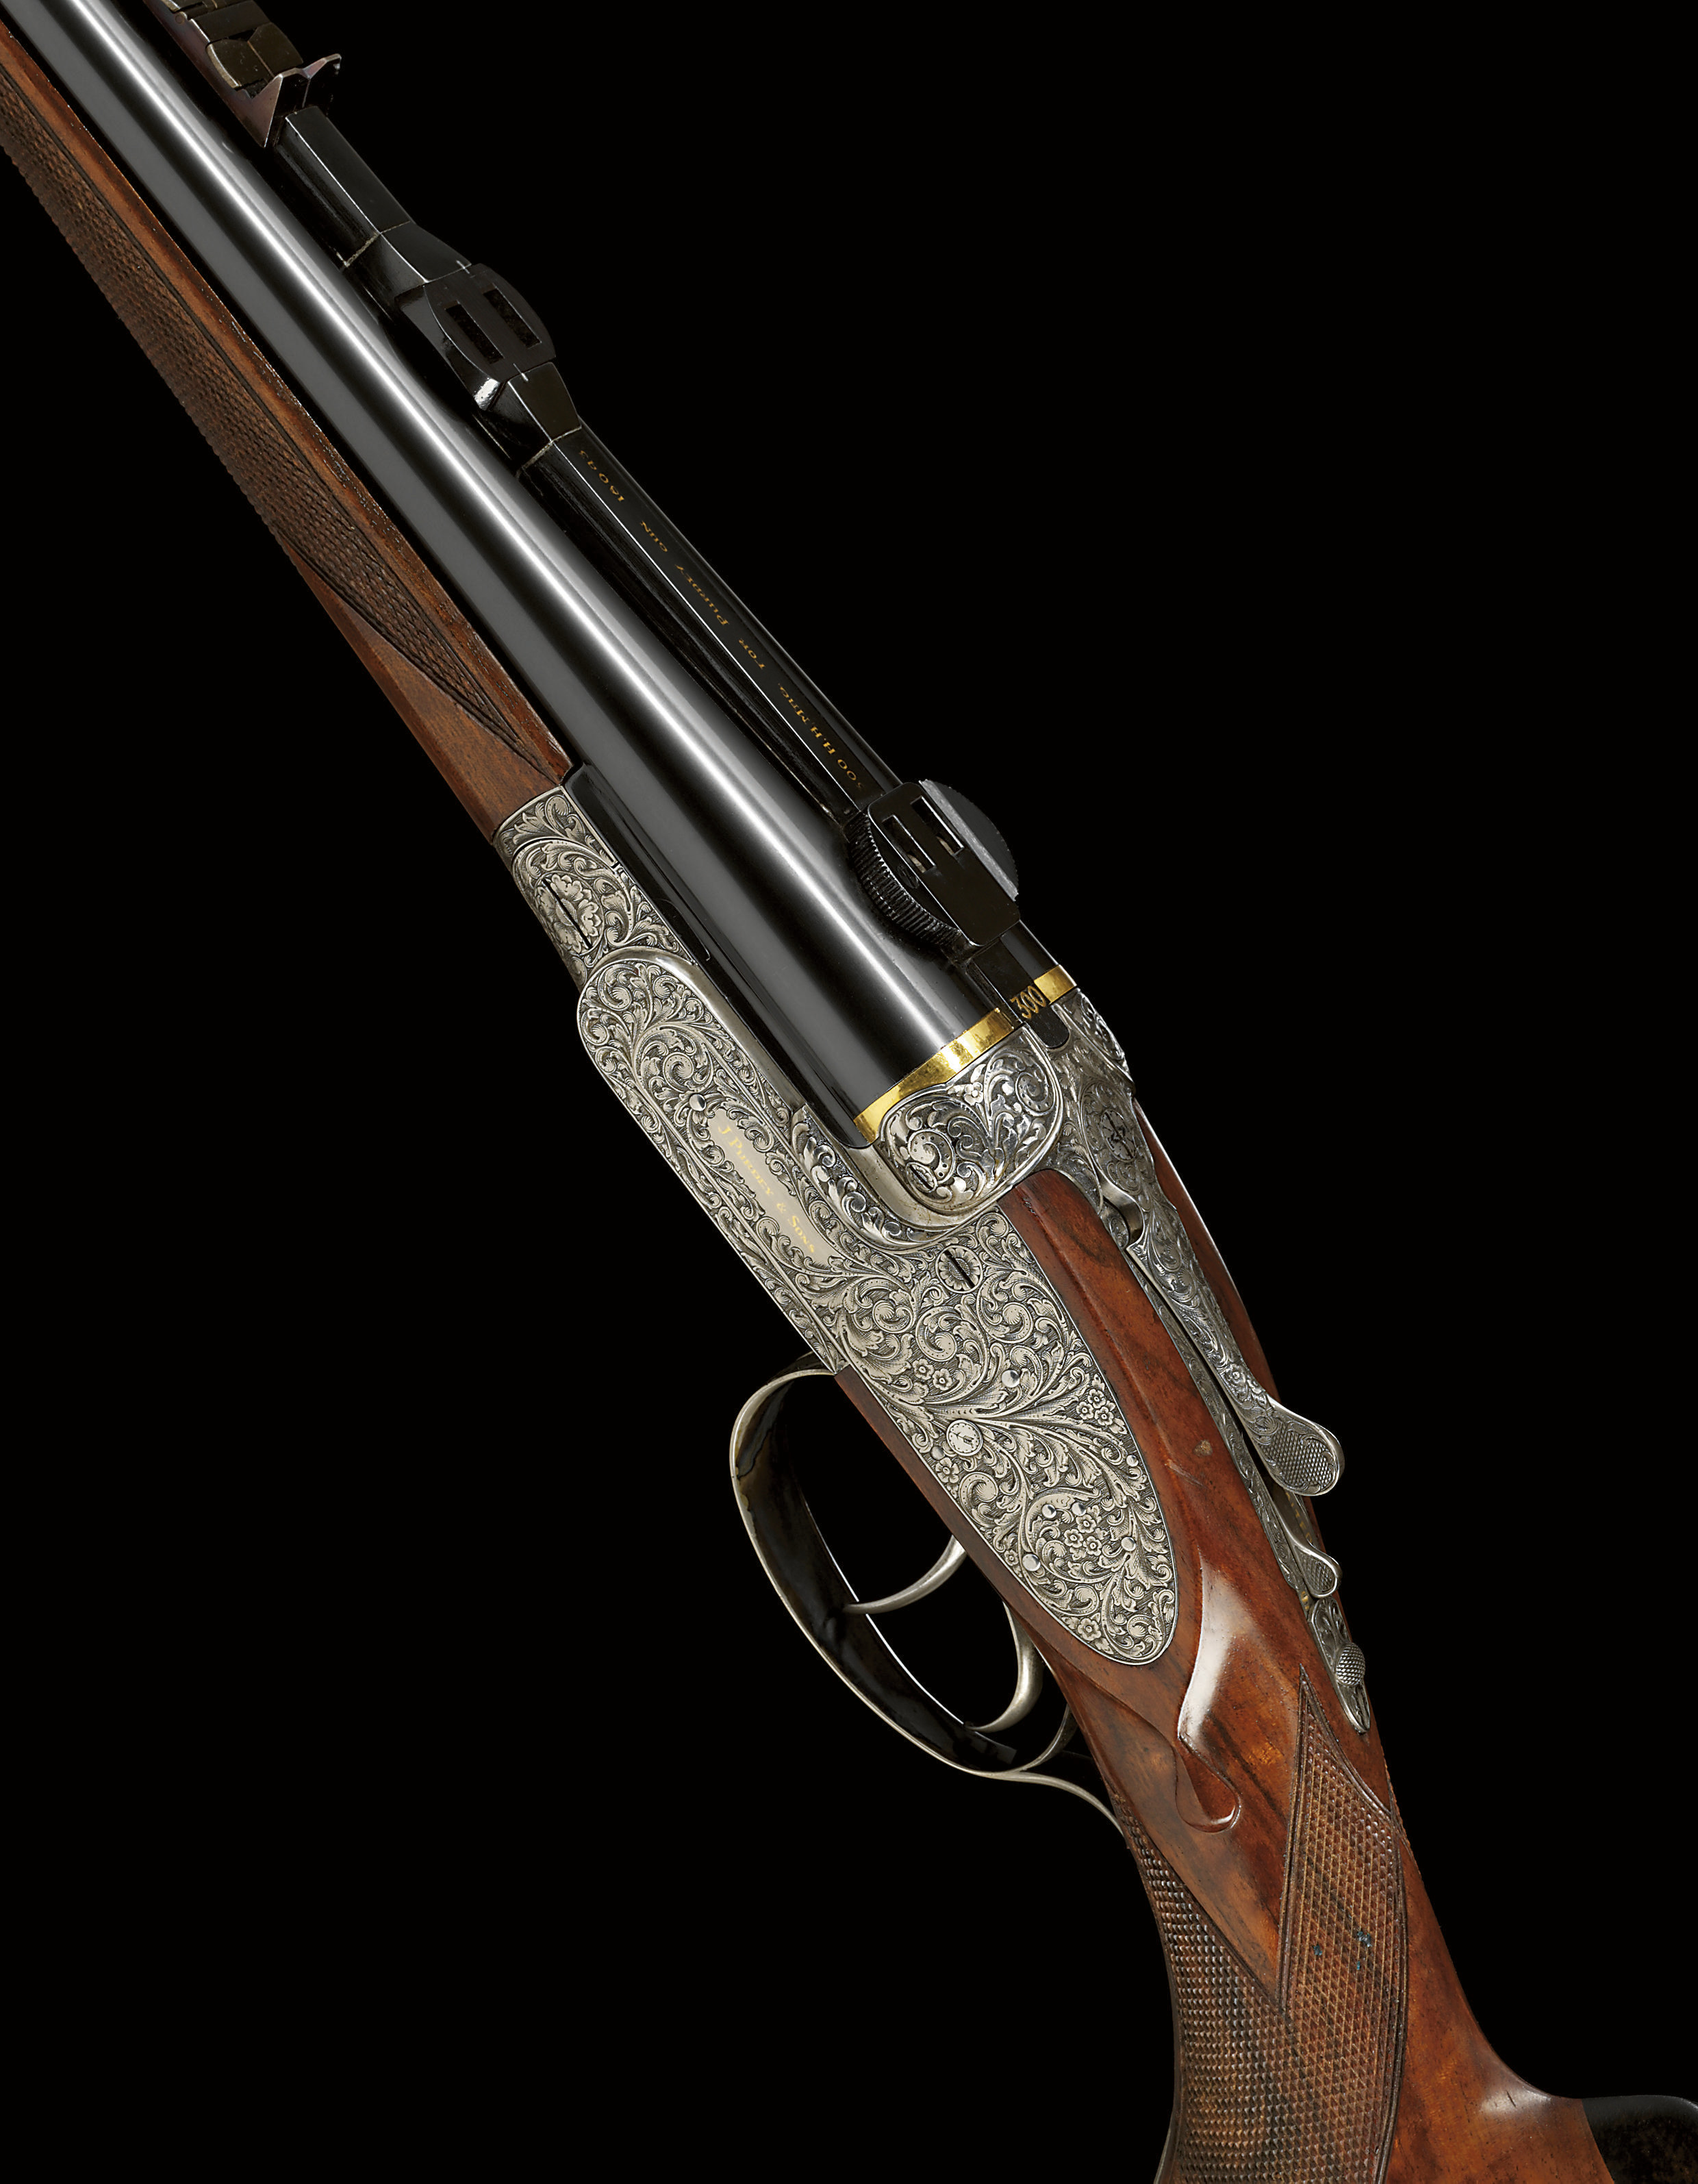 A DOUBLE-BARRELLED SELF-OPENING SIDELOCK EJECTOR SPORTING RIFLE BY J. PURDEY & SONS, NO. 18043 WITH INTERCHANGEABLE .458, .300 AND .270 BARRELS BY OTHERS